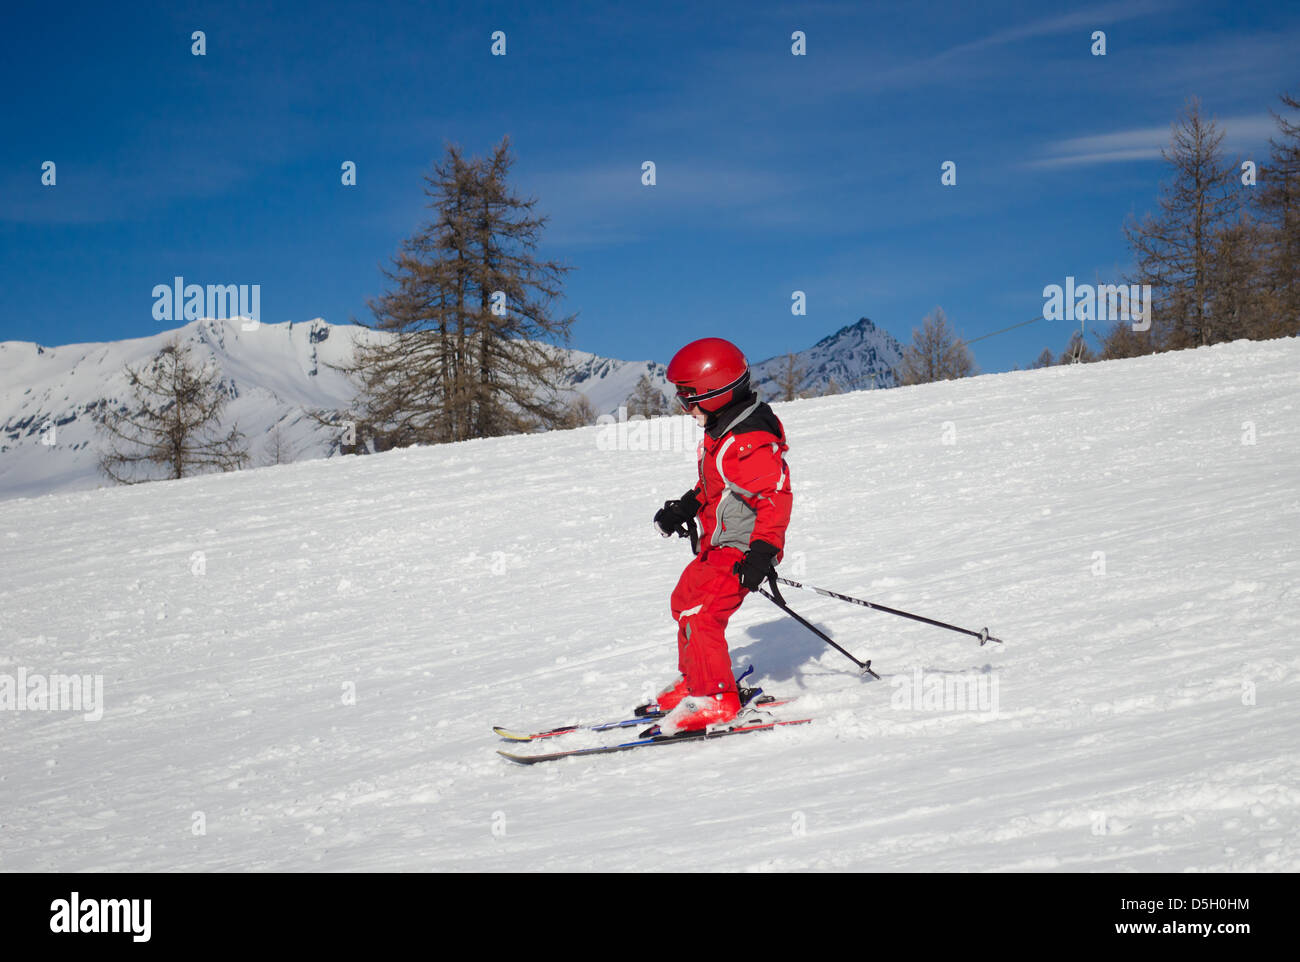 A kid in red ski suit skiing in a sunny day - Stock Image